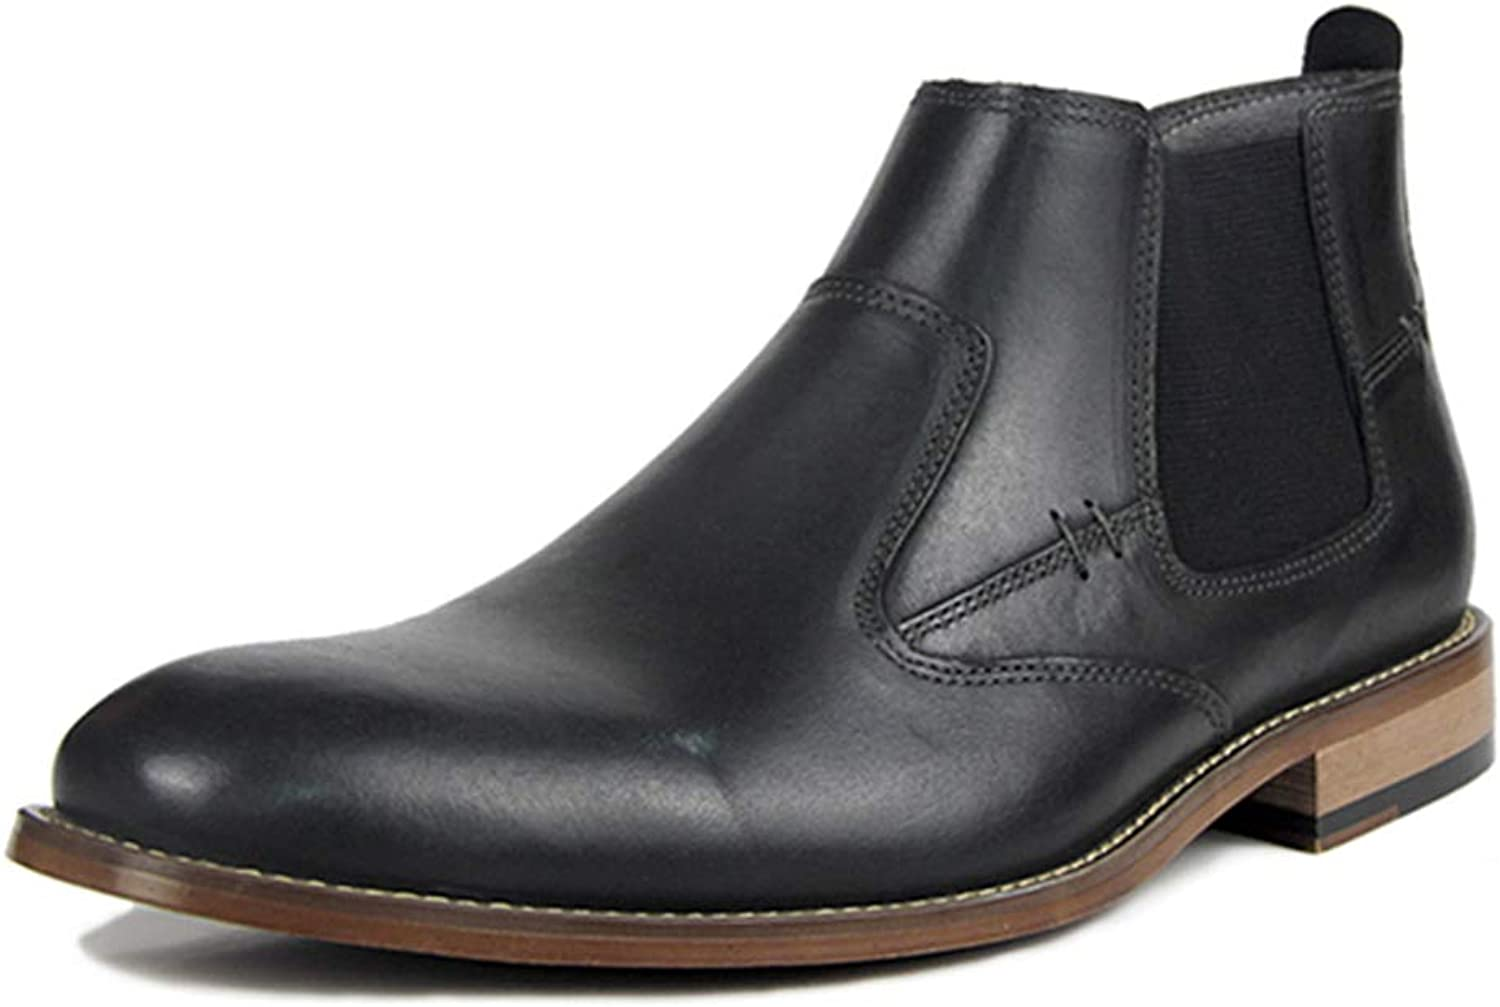 JITIAN Mens Chelsea Boots Leather Ankle Boots Winter Slip-on Male Short Boots Pointed Toe Winter Boots in Black Dark Brown